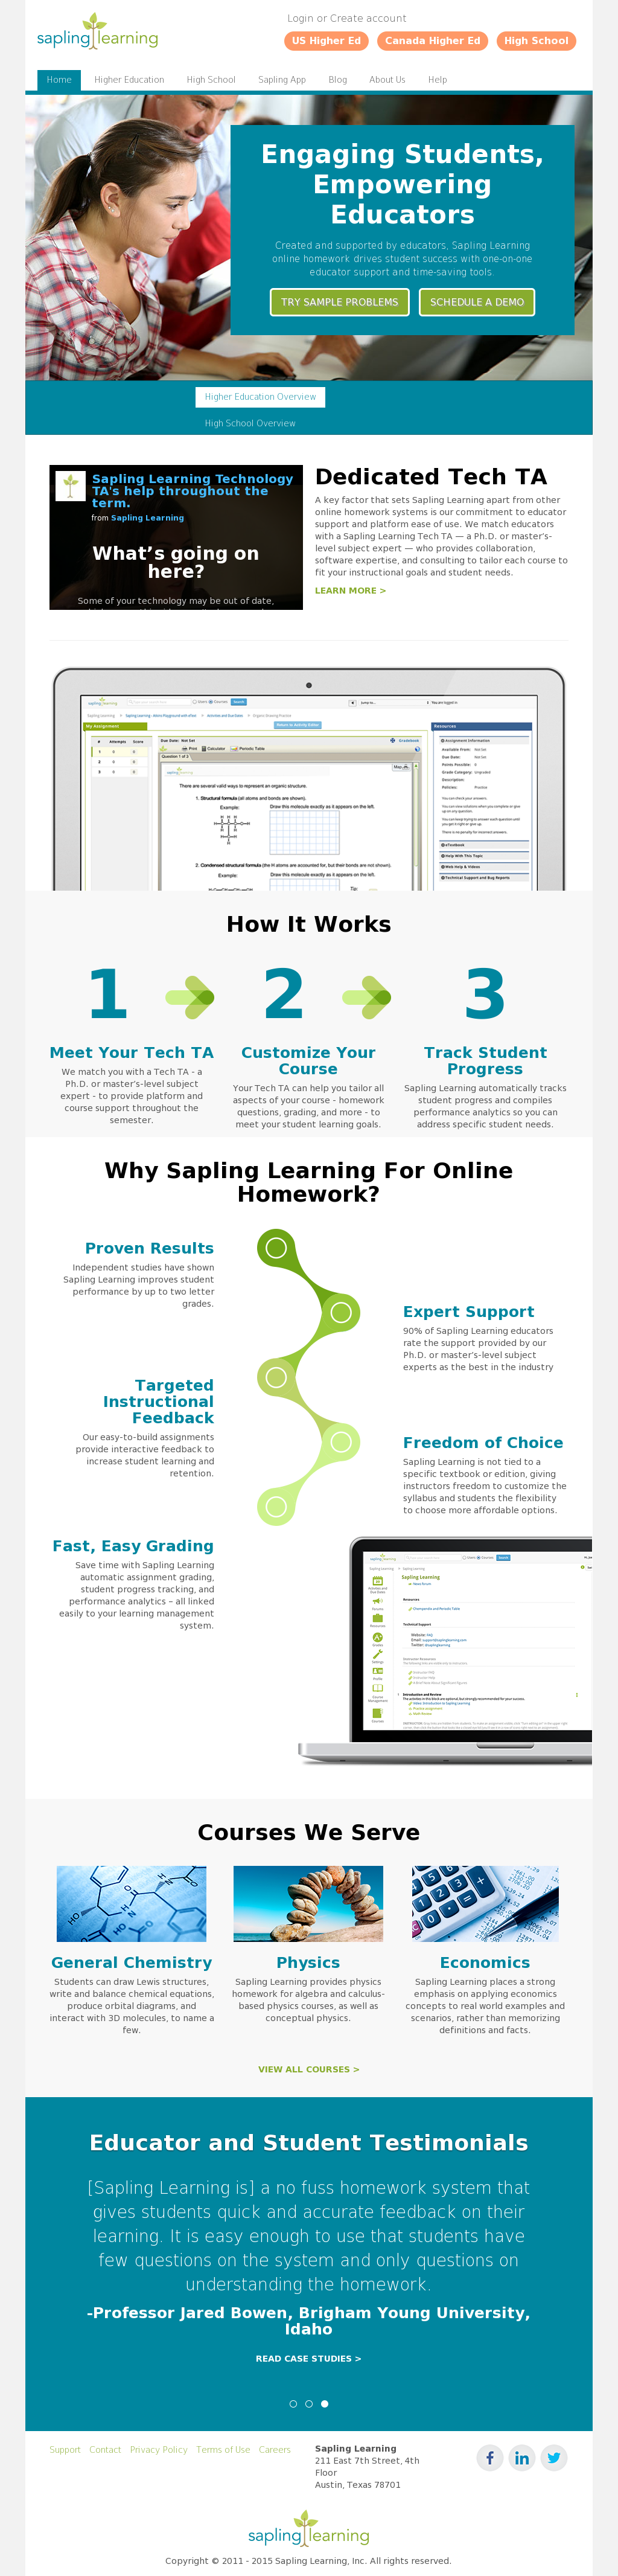 sapling learning online homework